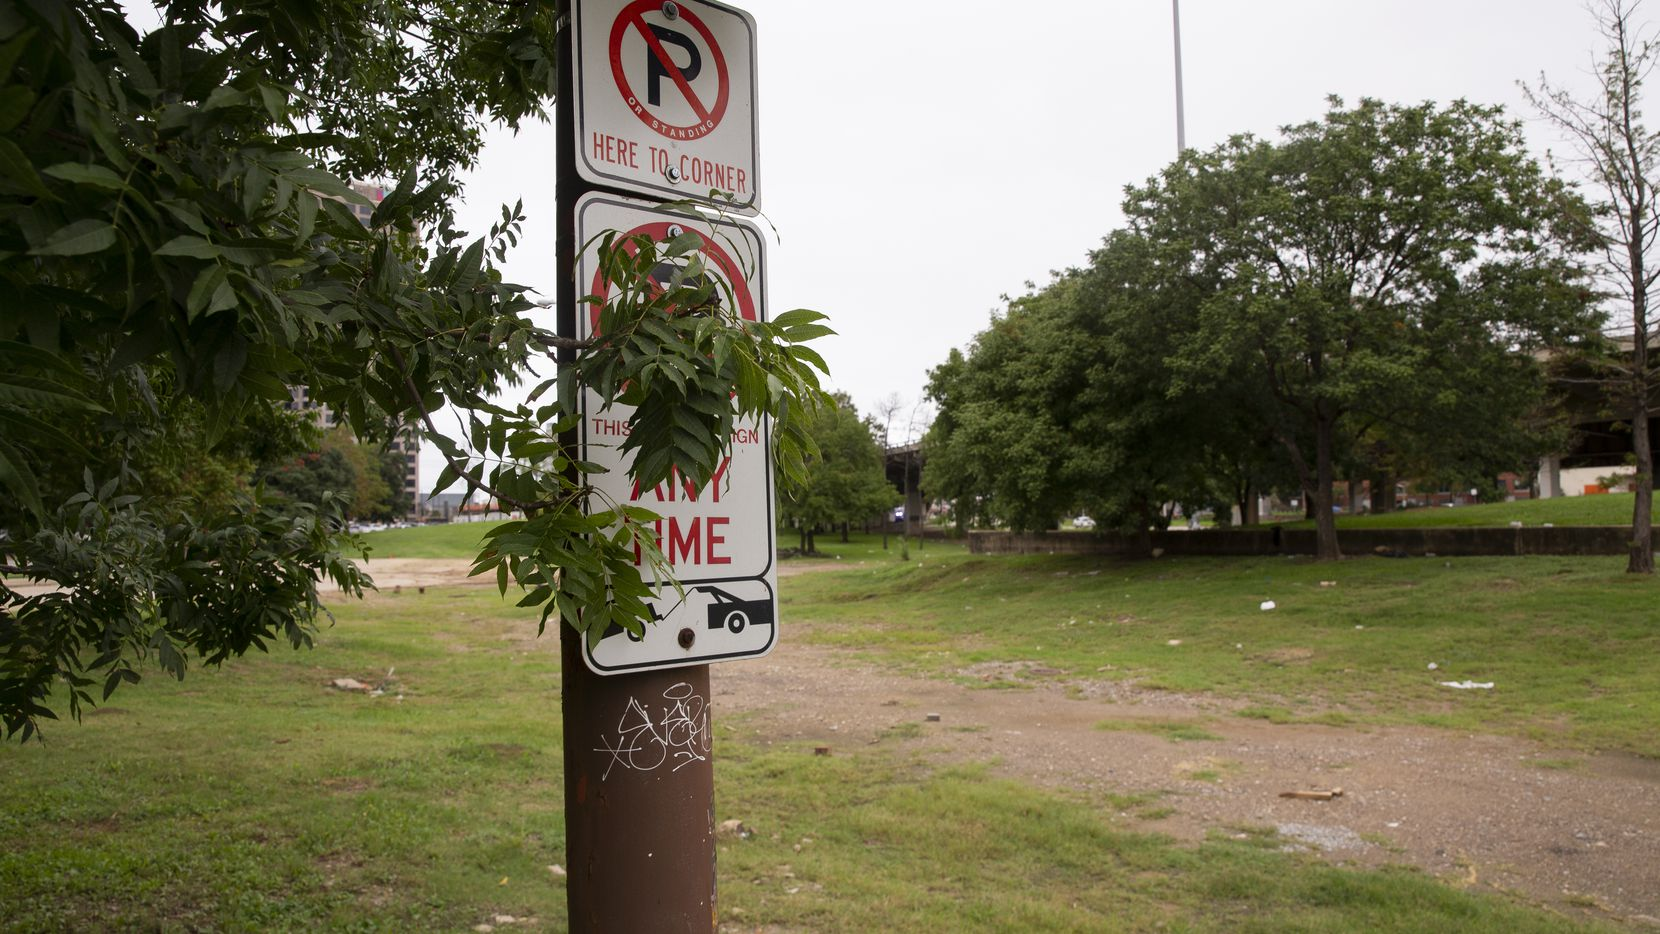 """No parking"" signs are still affixed to now-random light poles that once stood alongside streets before a major roads realignment on downtown Dallas' east side left the area a mishmash of weeds, mud and broken asphalt."